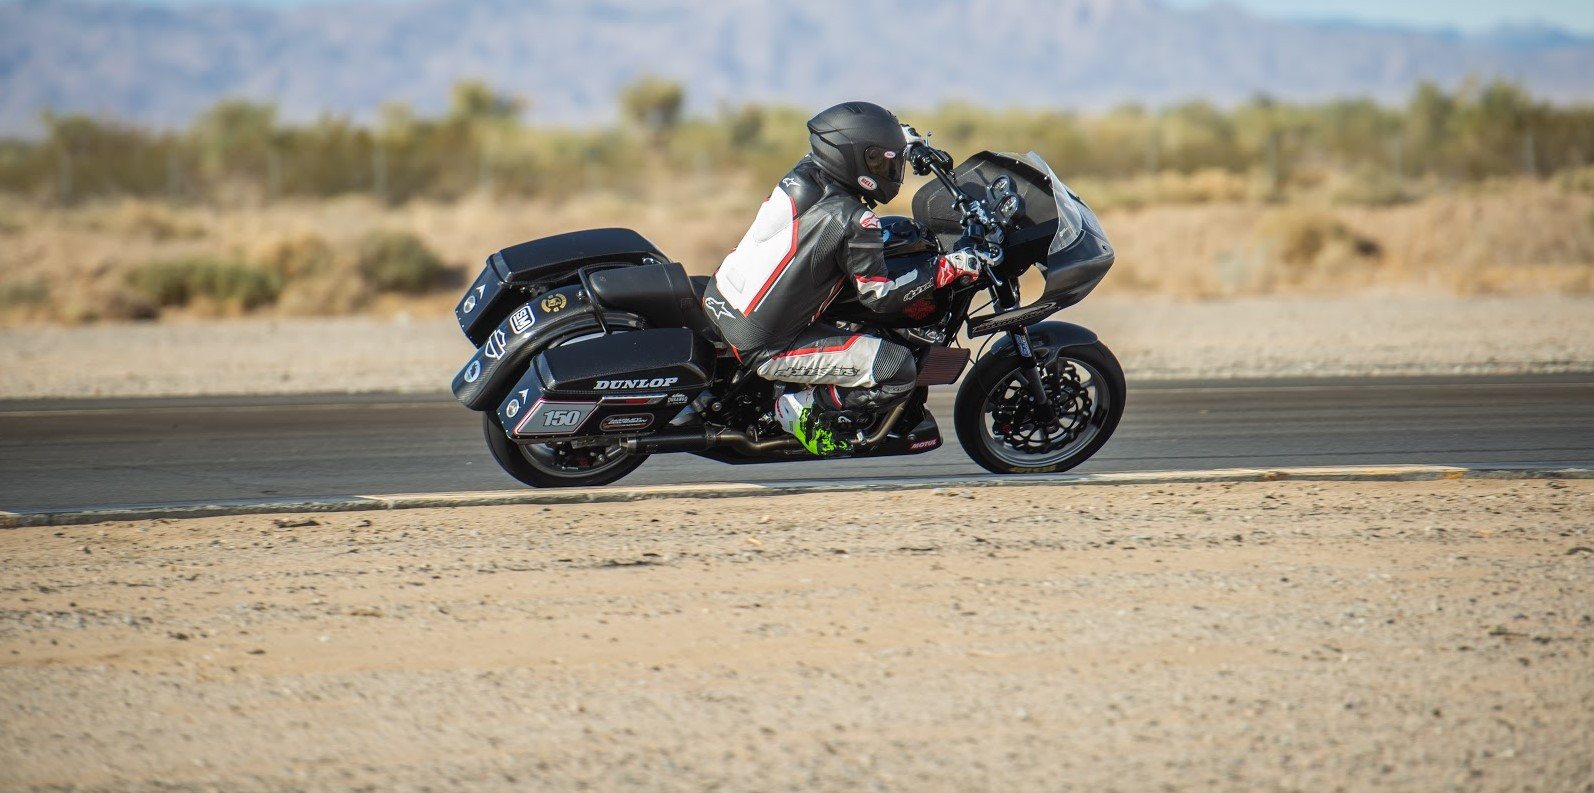 Tony Shreds riding a Durango Harley-Davidson Street Glide built by The Speed Merchant. Photo by Justin George, courtesy BRL.